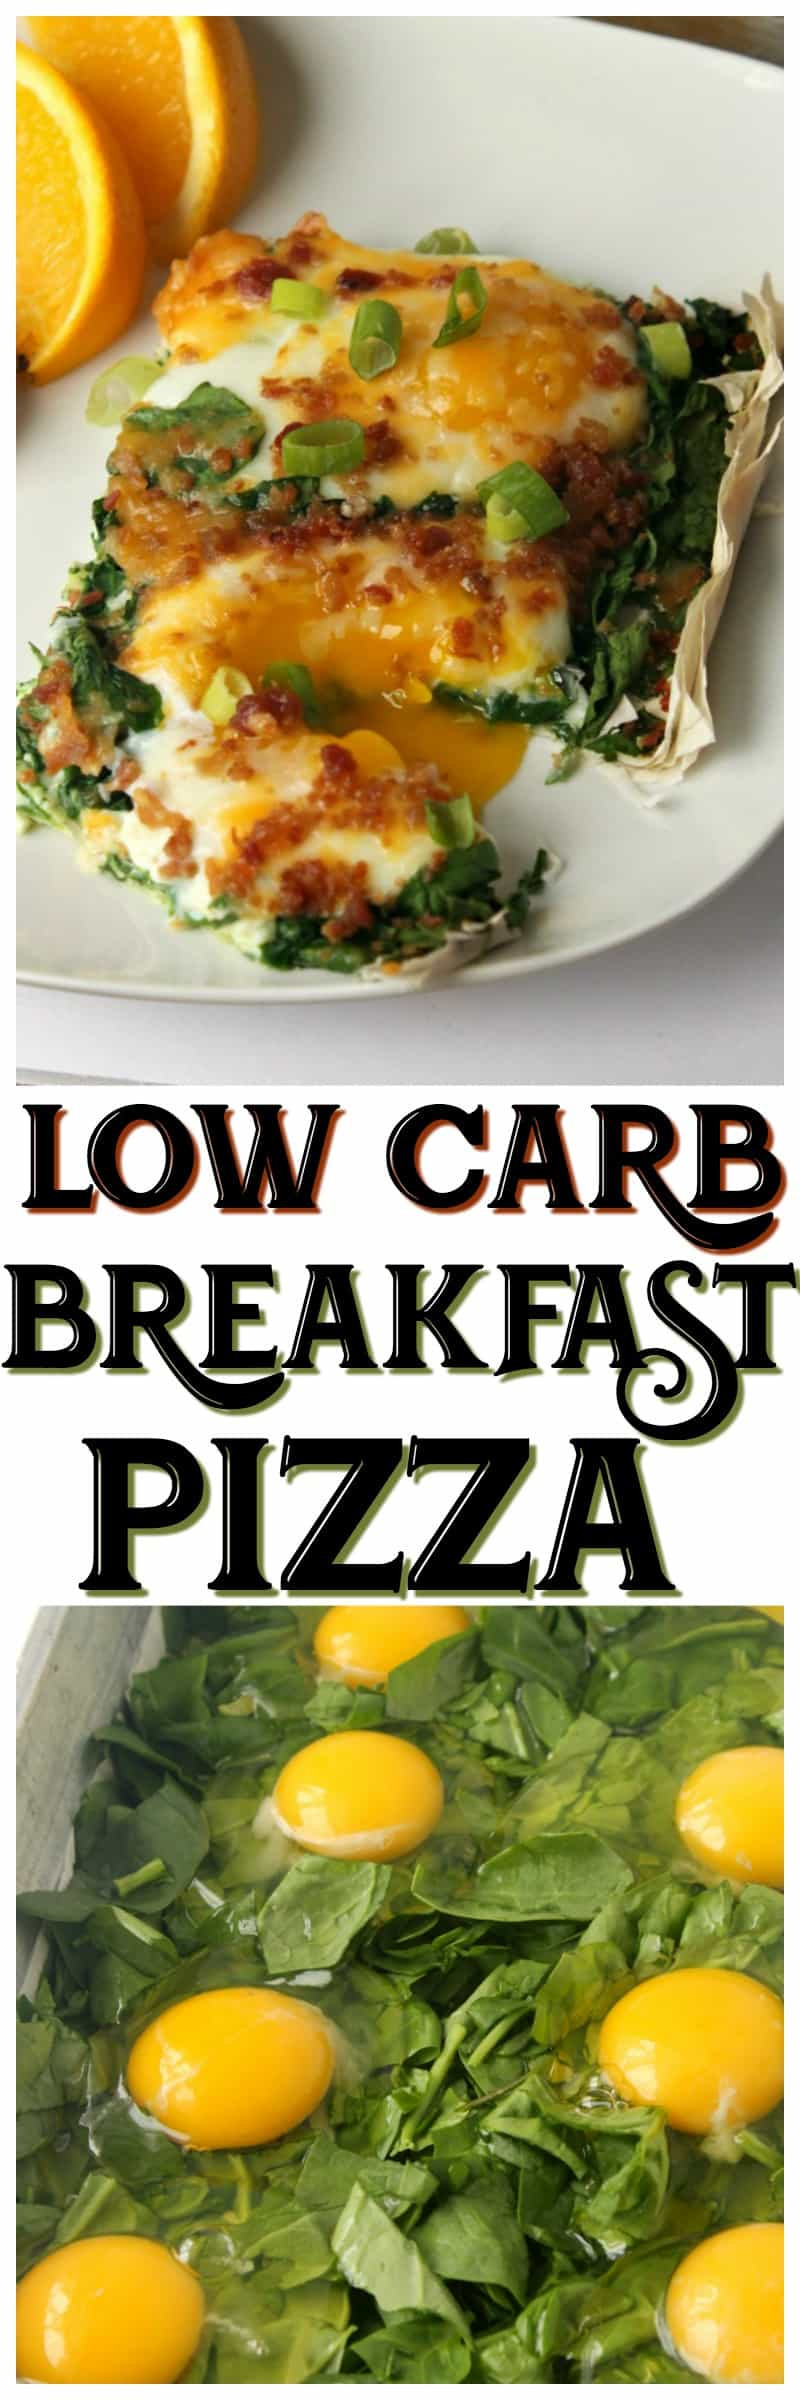 Low Carb Breakfast Pizza  Simple Low Carb Breakfast Pizza